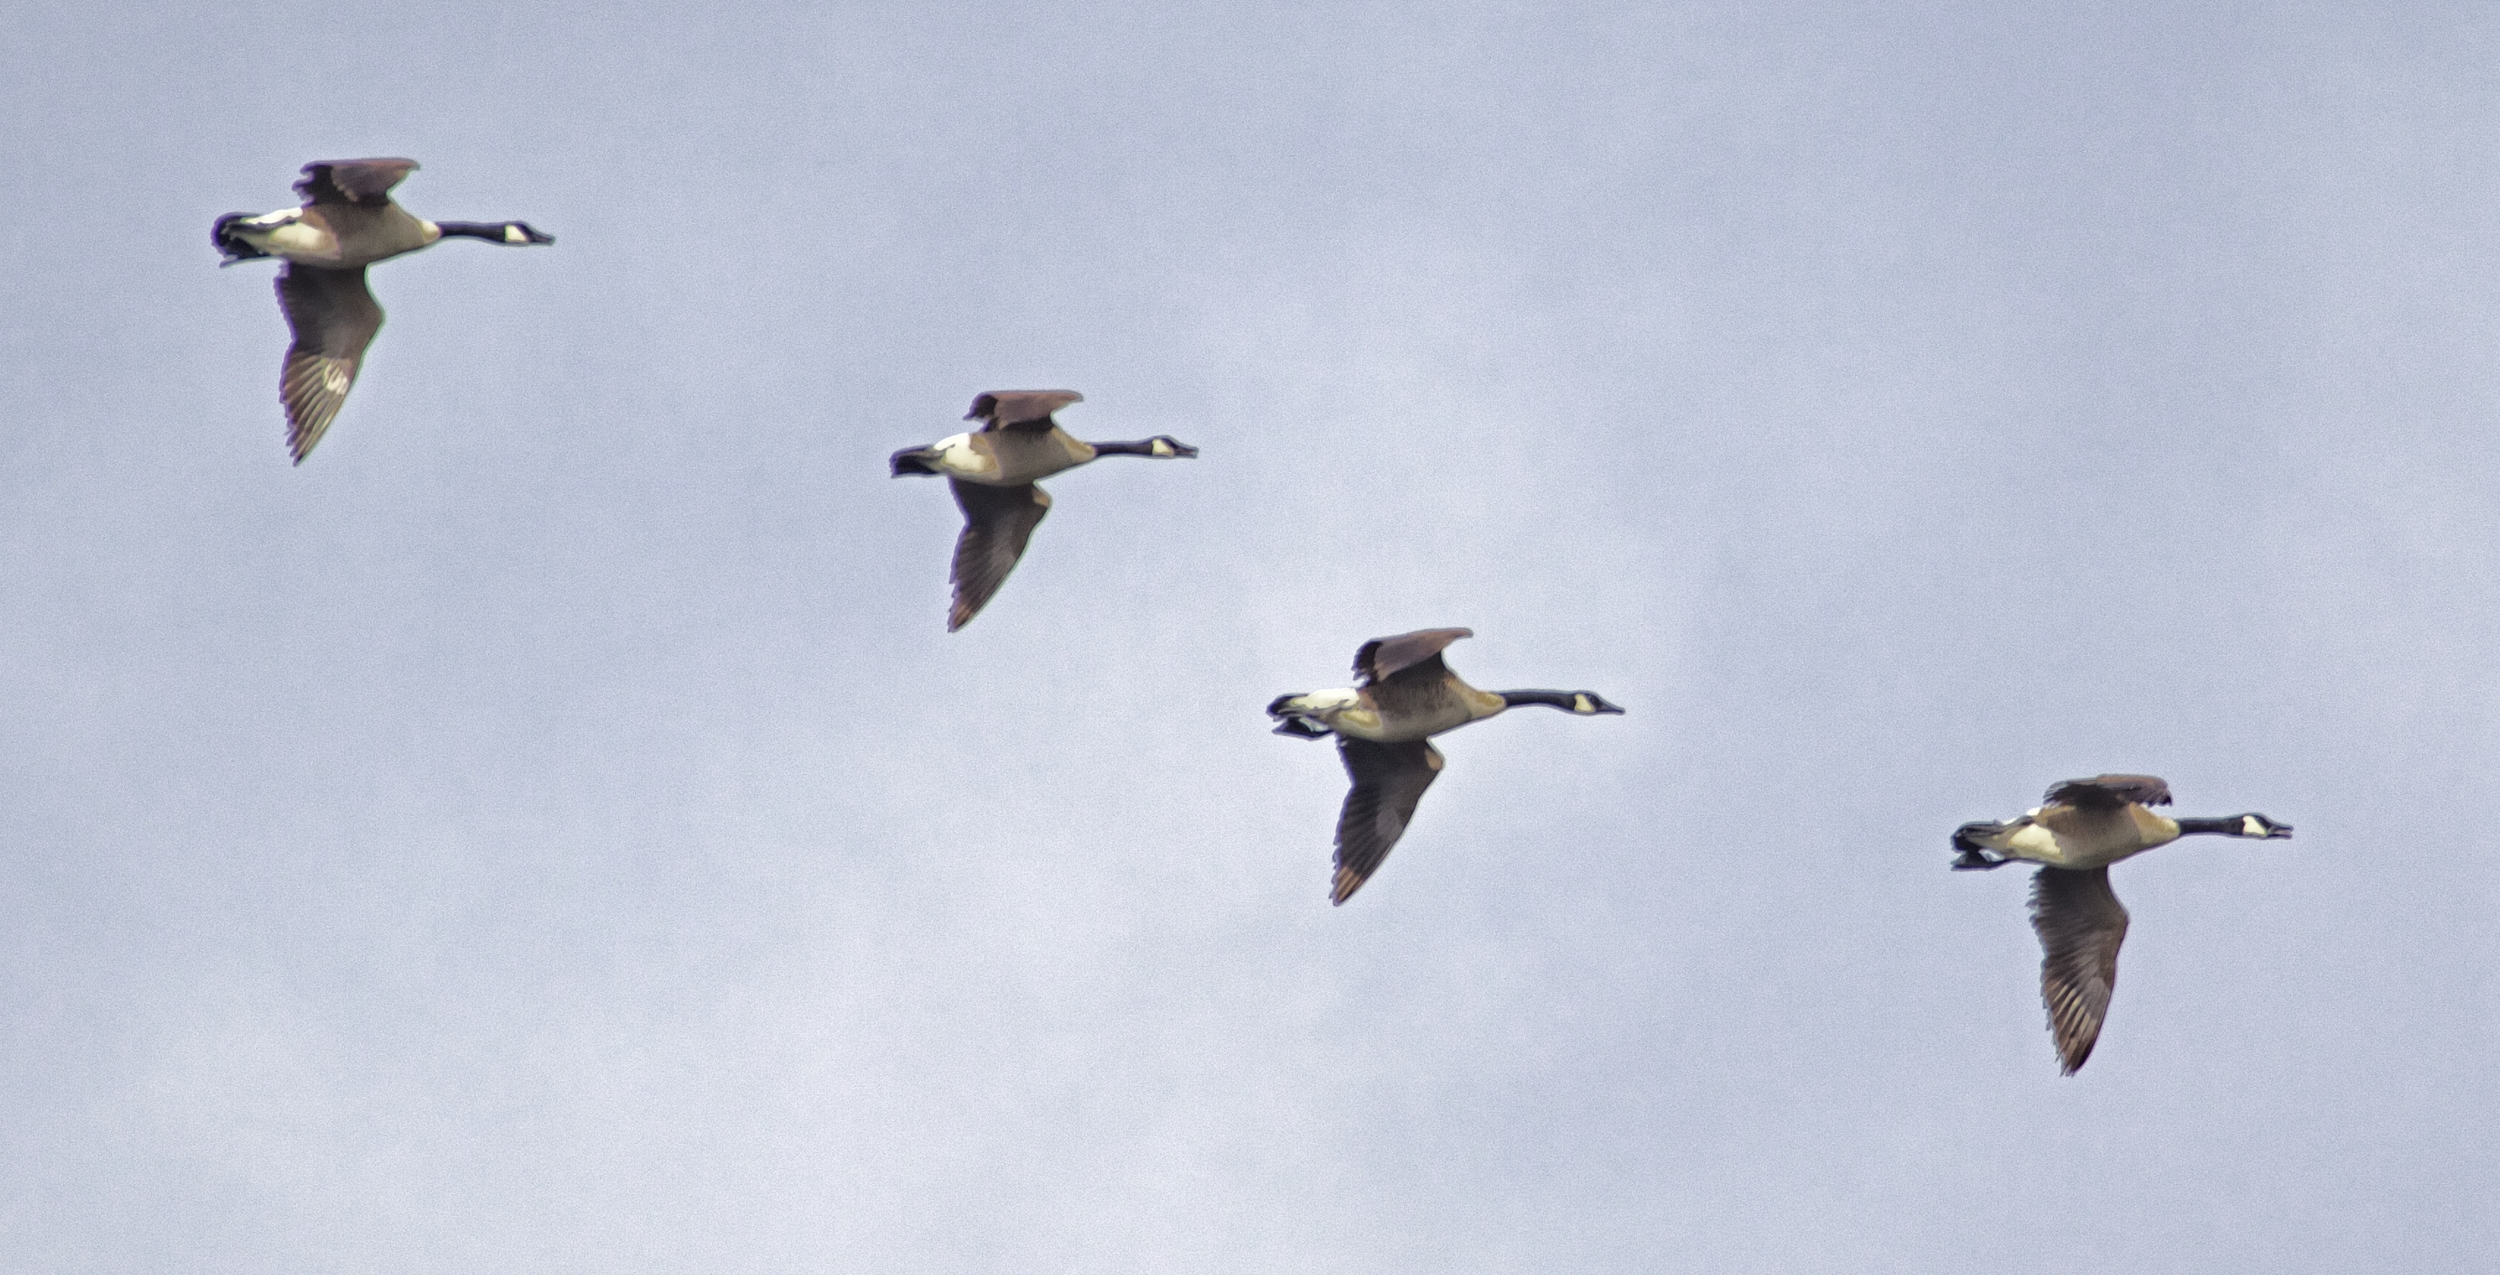 I hear the familiar honk of the Canada Geese as they fly by..